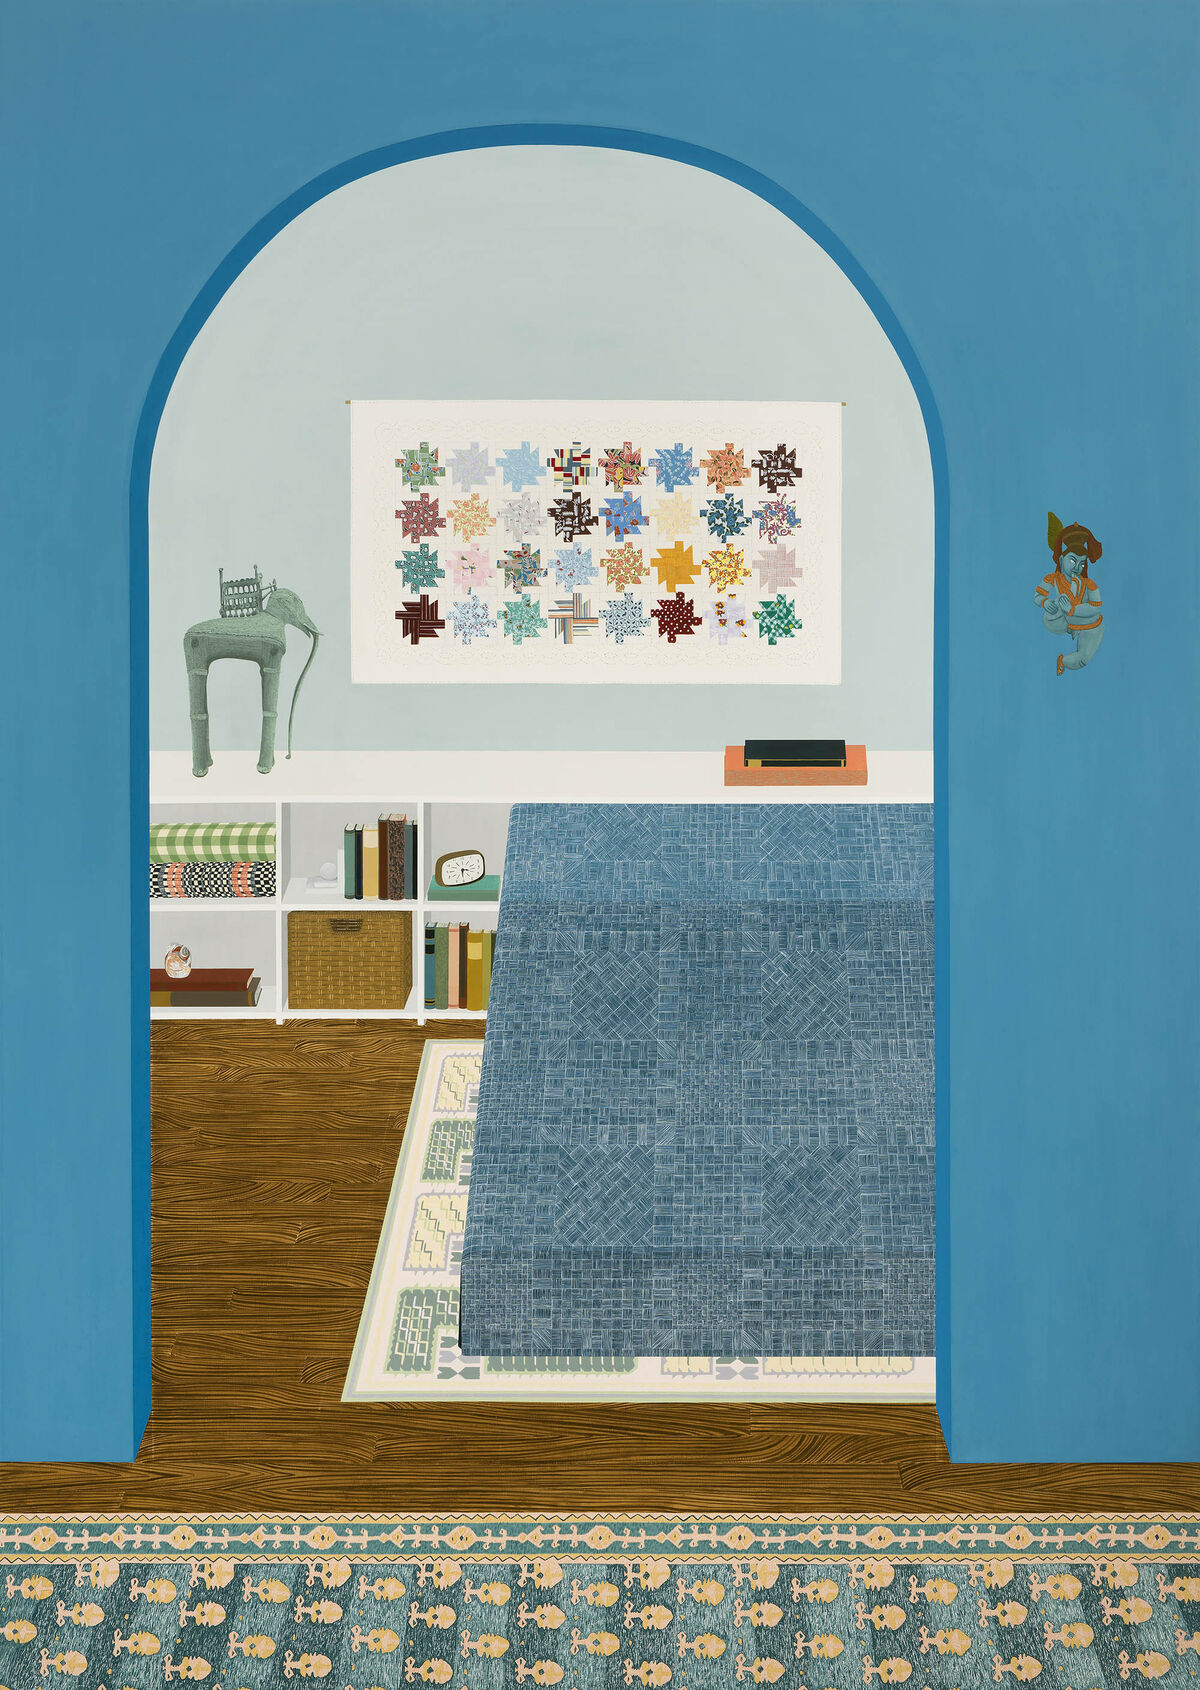 Becky Suss, Blue Apartment, 2016. ©Becky Suss. Courtesy of the artist and Jack Shainman Gallery.